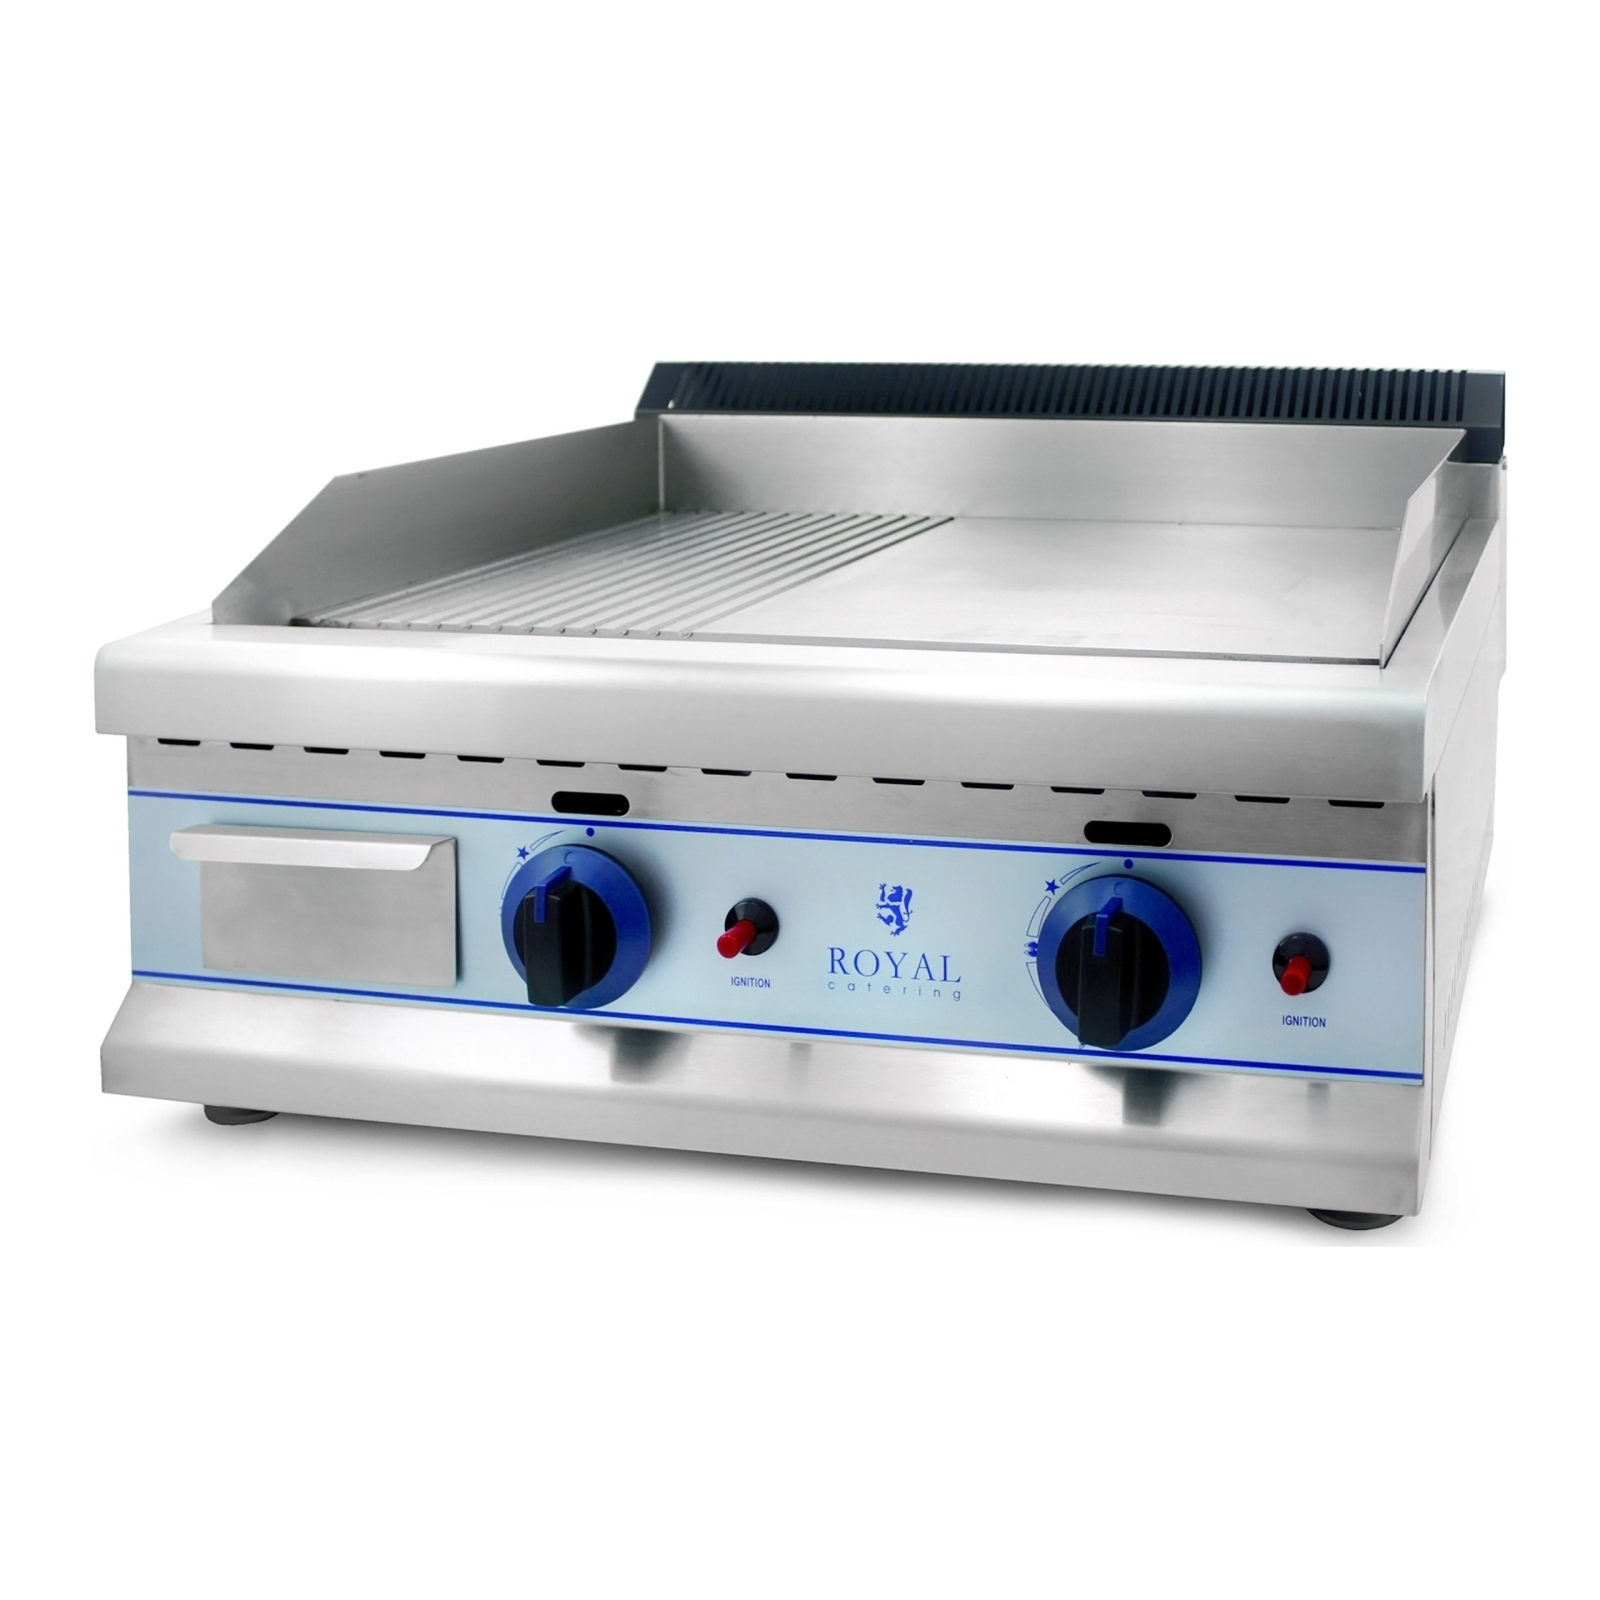 Royal Catering Gas-Doppelgrill - 65 cm - Erdgas - 20 mbar 10010116